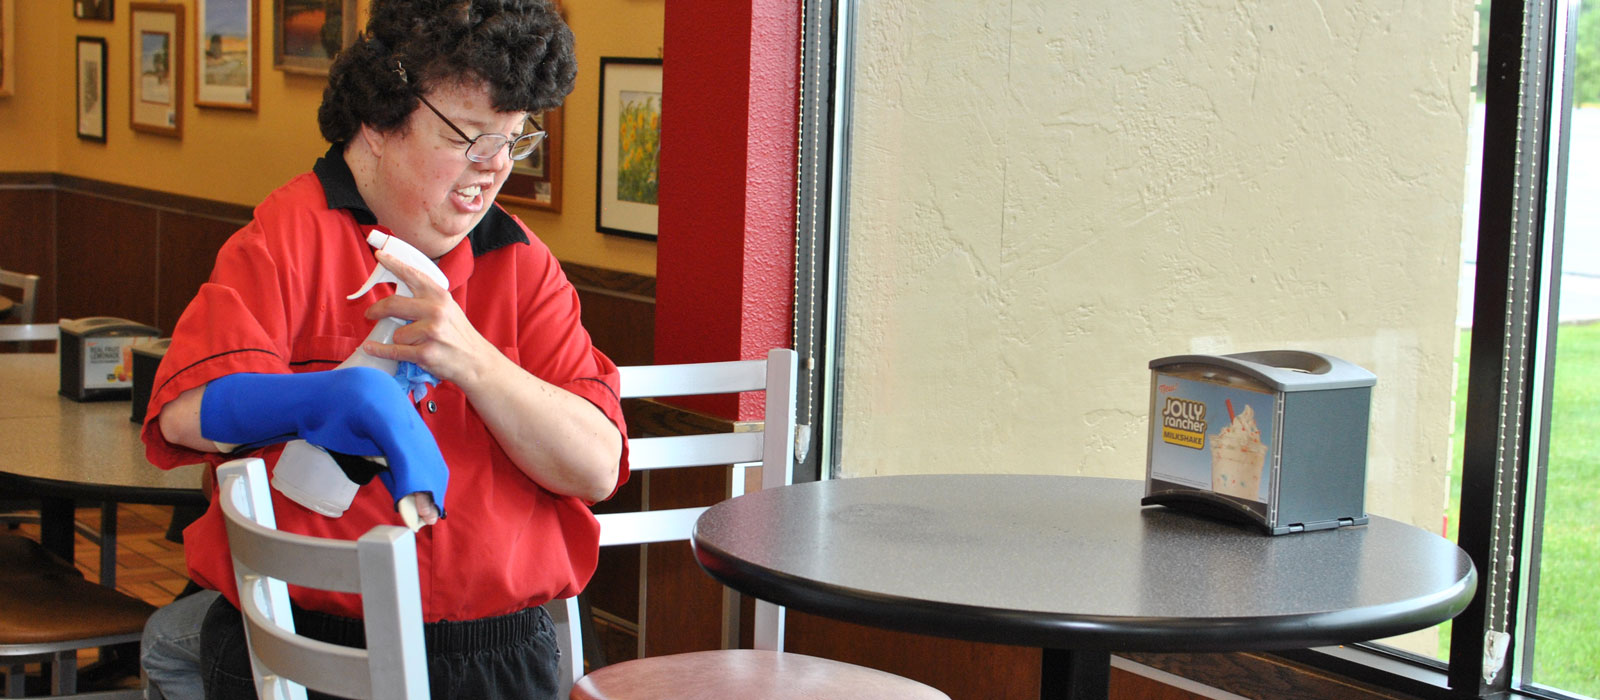 April cleaning a table at Hardees in I. Falls